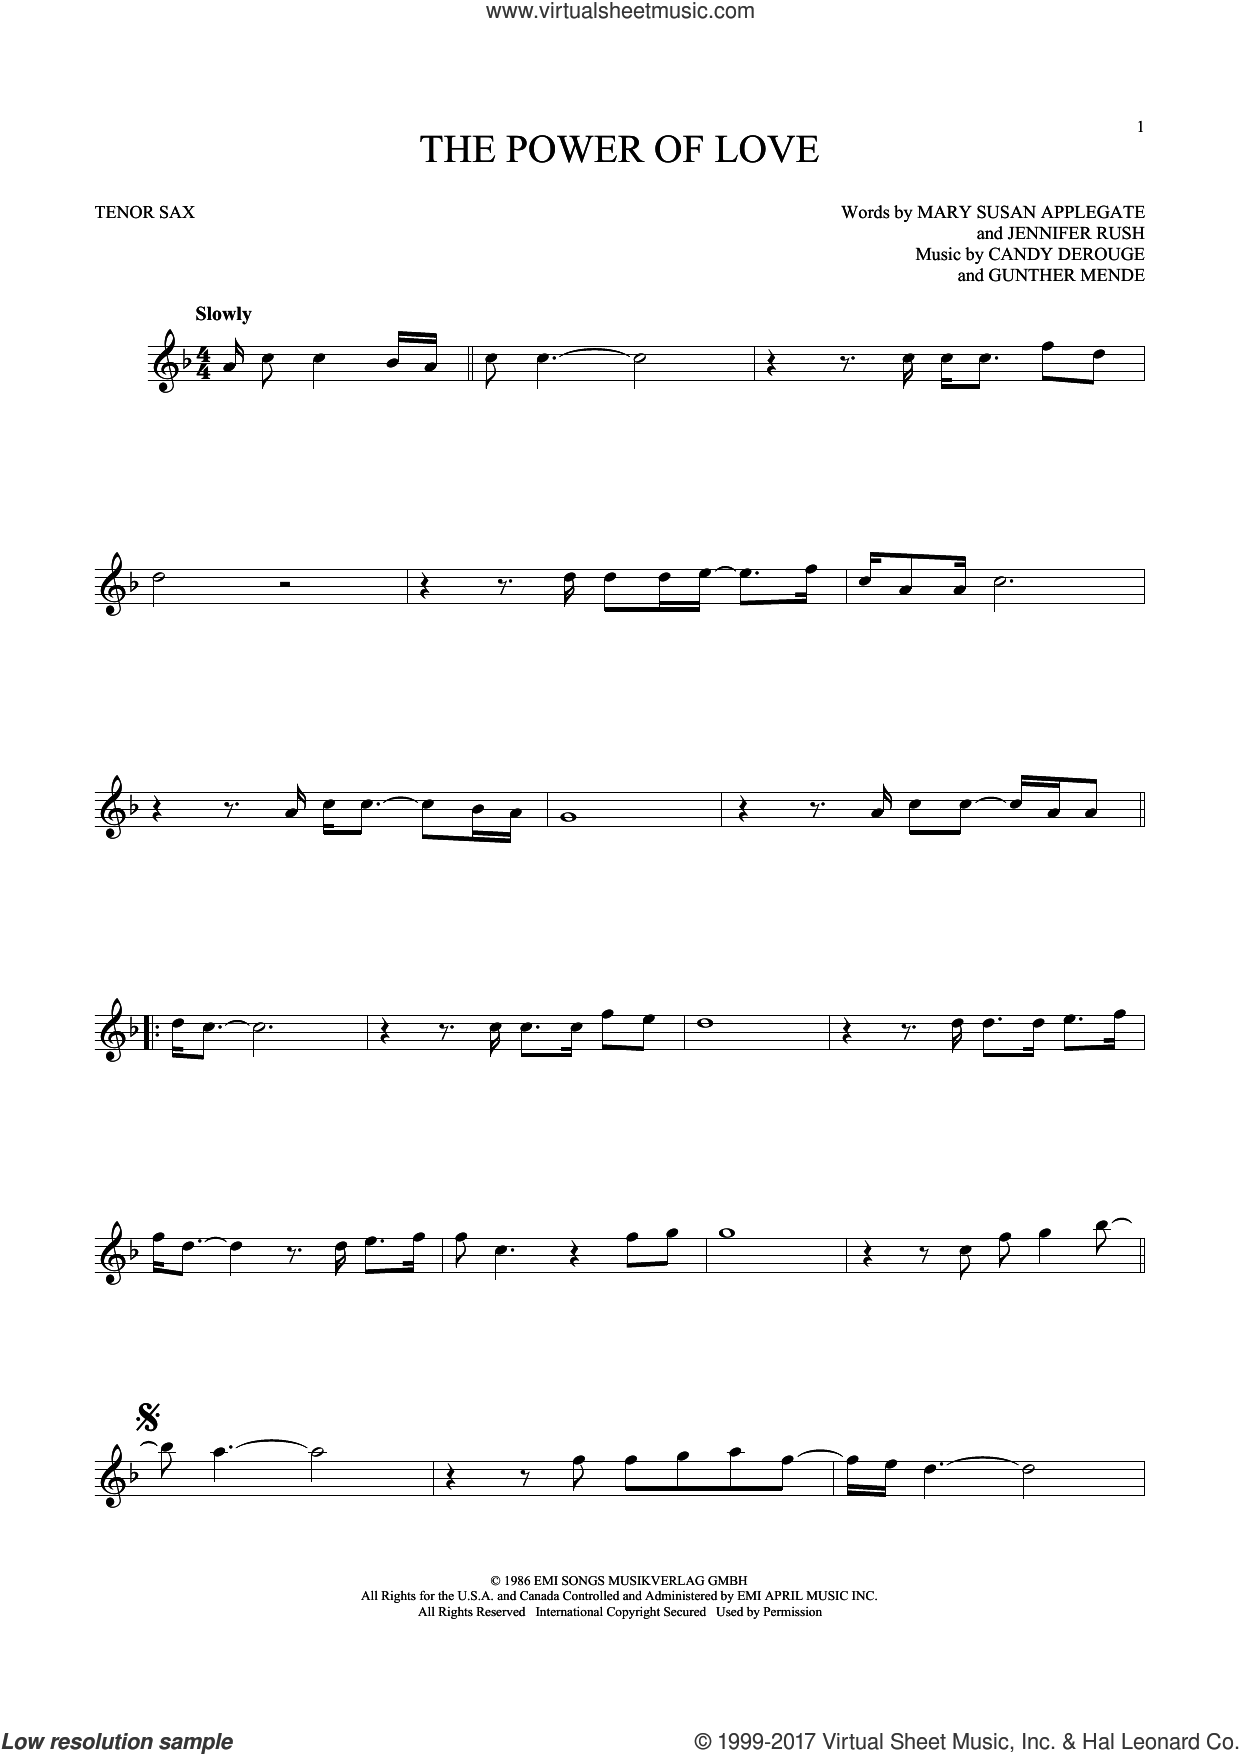 The Power Of Love sheet music for tenor saxophone solo by Air Supply, Celine Dion, Laura Brannigan, Candy Derouge, Gunther Mende, Jennifer Rush and Mary Susan Applegate, intermediate skill level